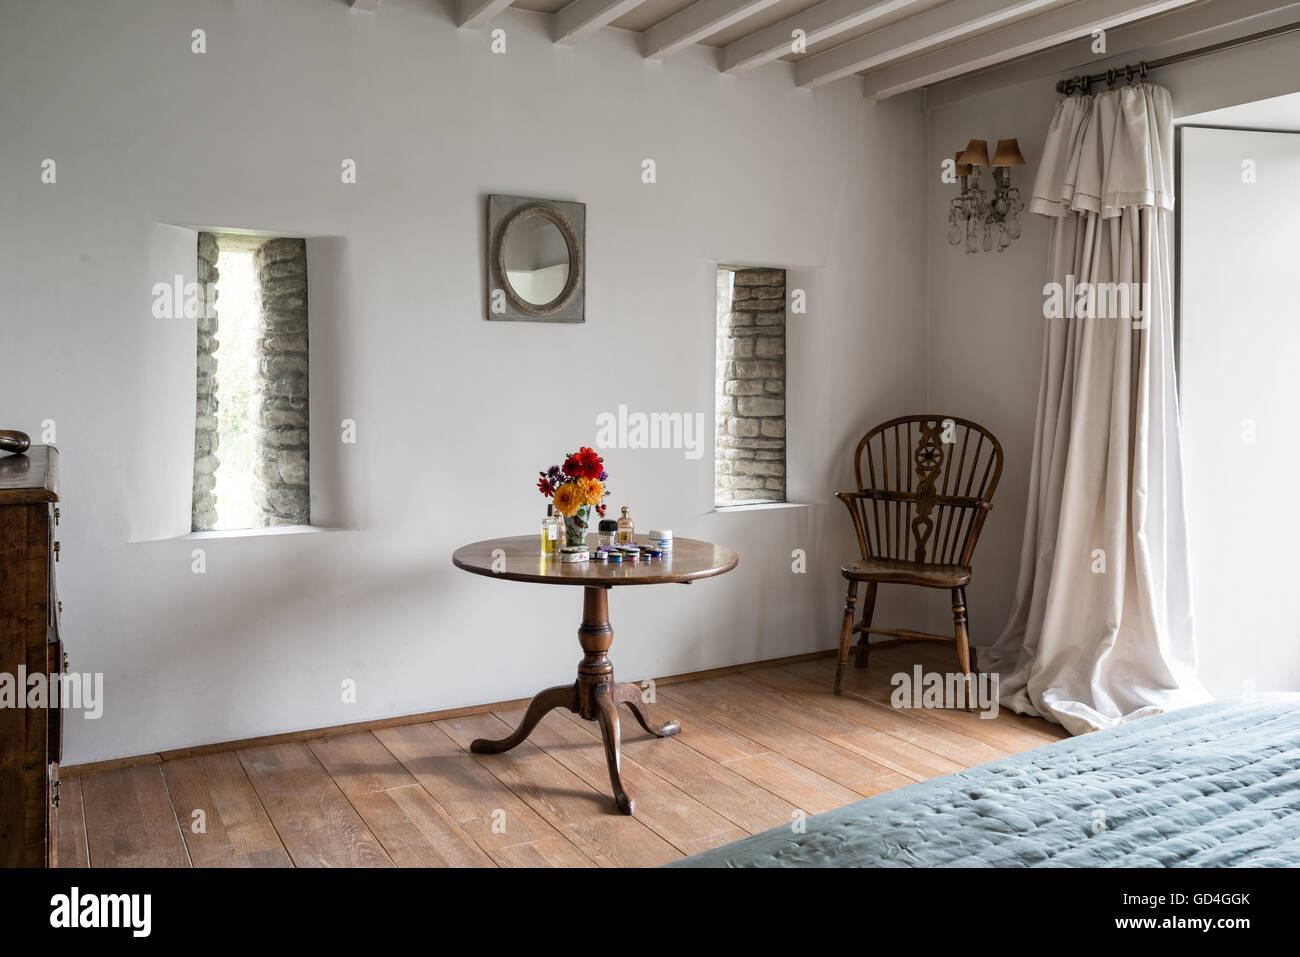 Wooden chair with pedestal base table in bedroom - Stock Image